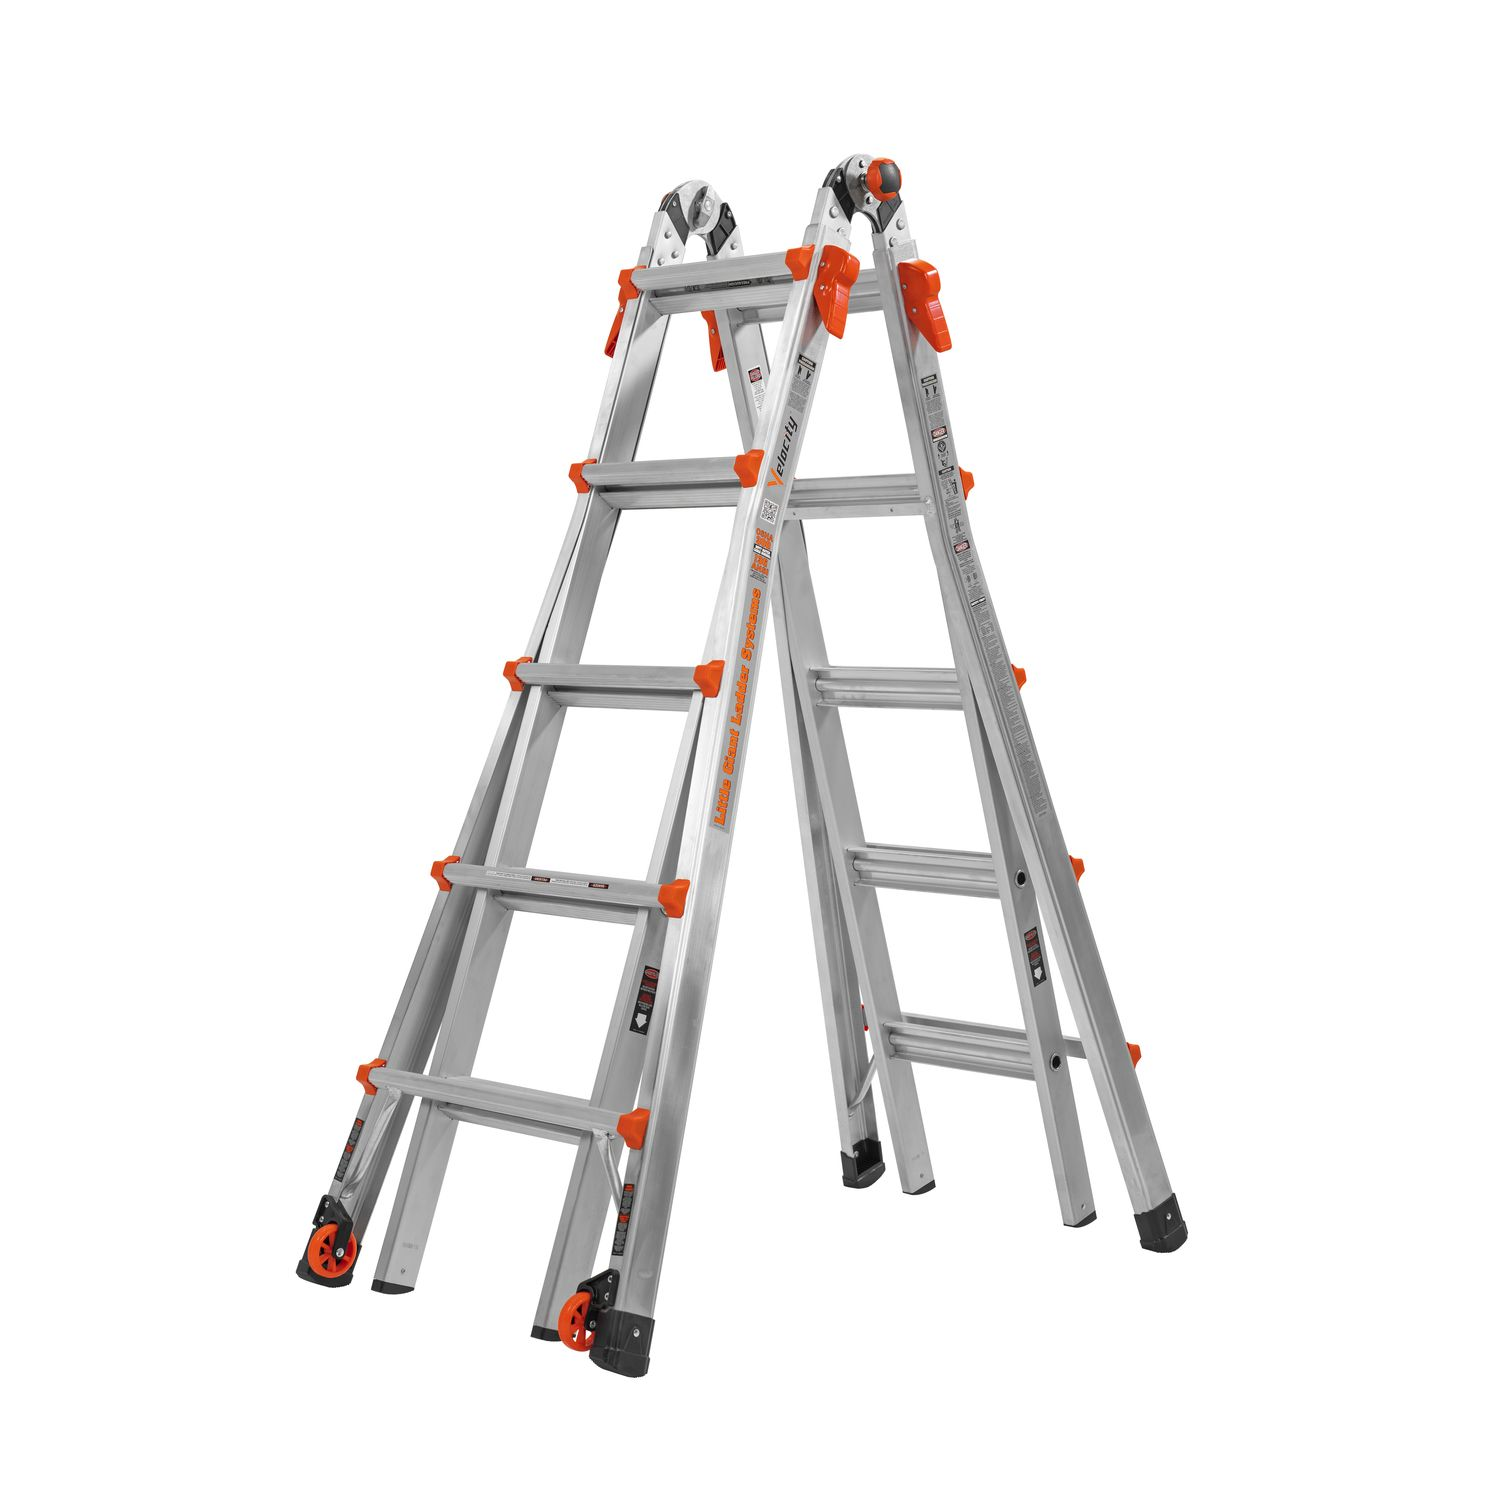 Pin By Lizelle Festejo On Garage Best Ladder Aluminium Ladder Little Giants